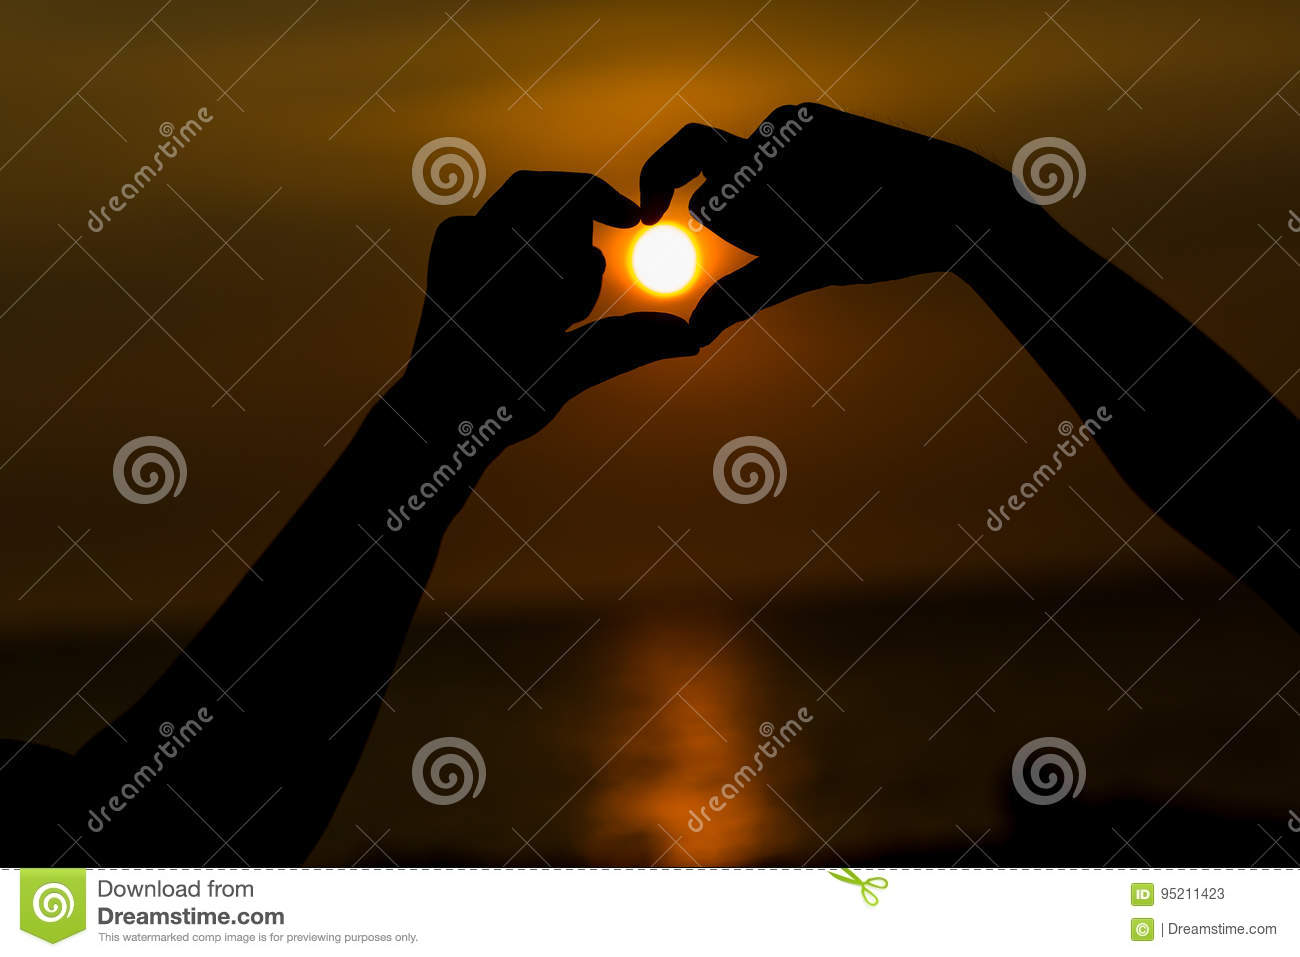 Silhouette of hands making a heart shaped symbol with beautiful sunset background.